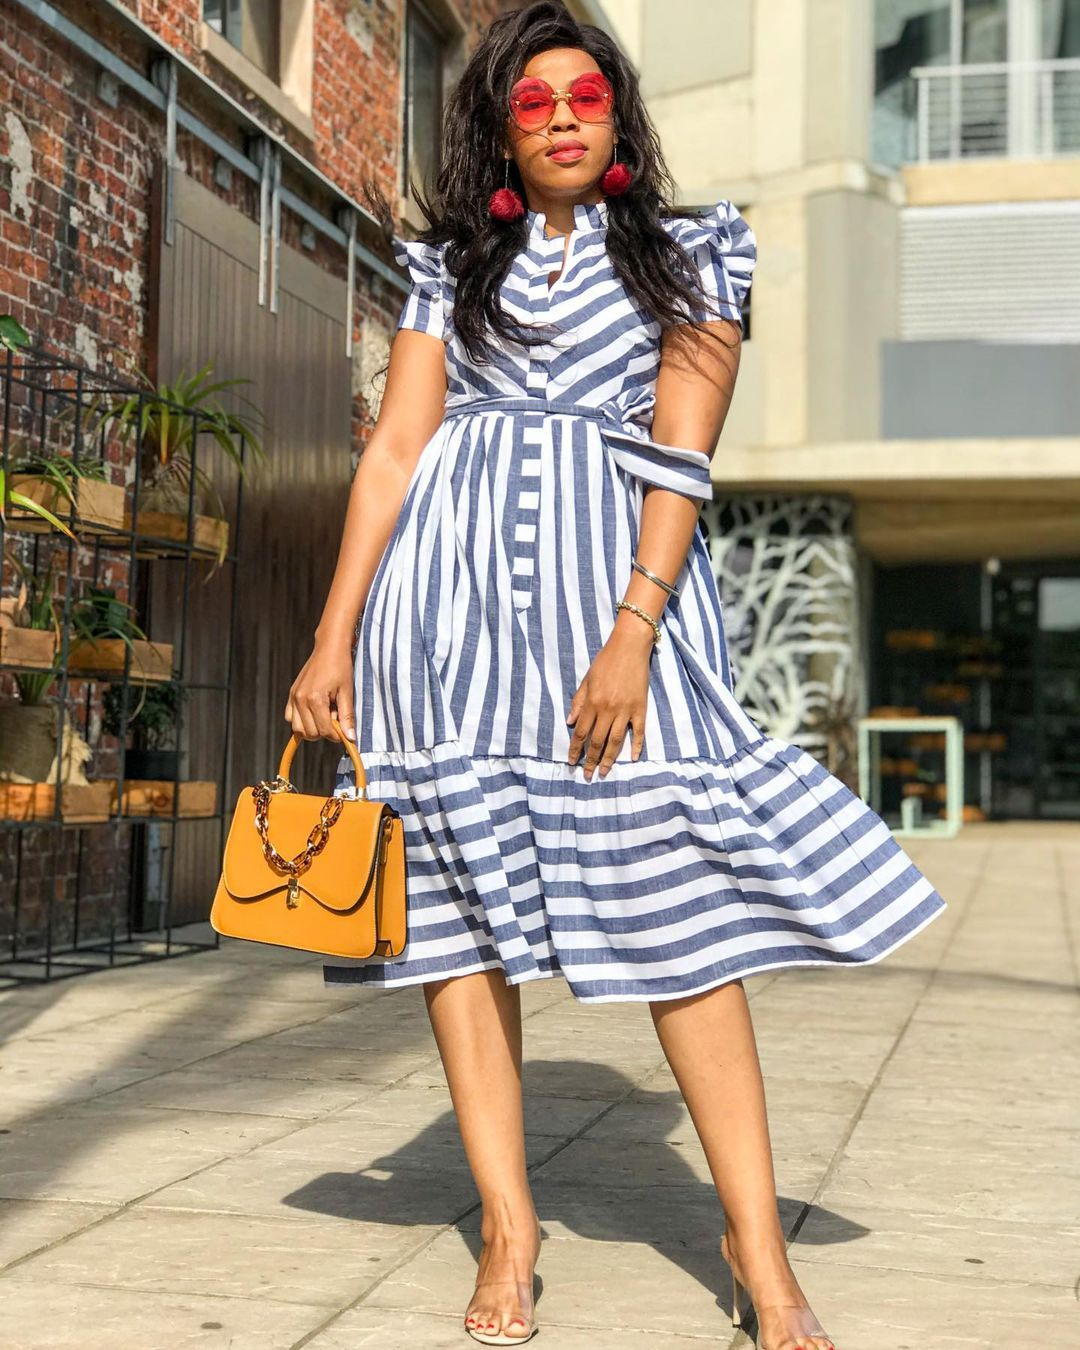 Available immediately Sizes: 30-34 Price: R300 Order: 068 501 0045 Courier is available via Aramex, Paxi or Post Office. #offshoulderdress #Stiletto #Winterdresses #Ankleboots #PearDetailedTrenchCoat #WinterCoats #Boots #Shopping #SexyHeels #Bowheels #LoveShopping #NewCollection #Fashionista #ShoeLover #BagLover #Bagmania